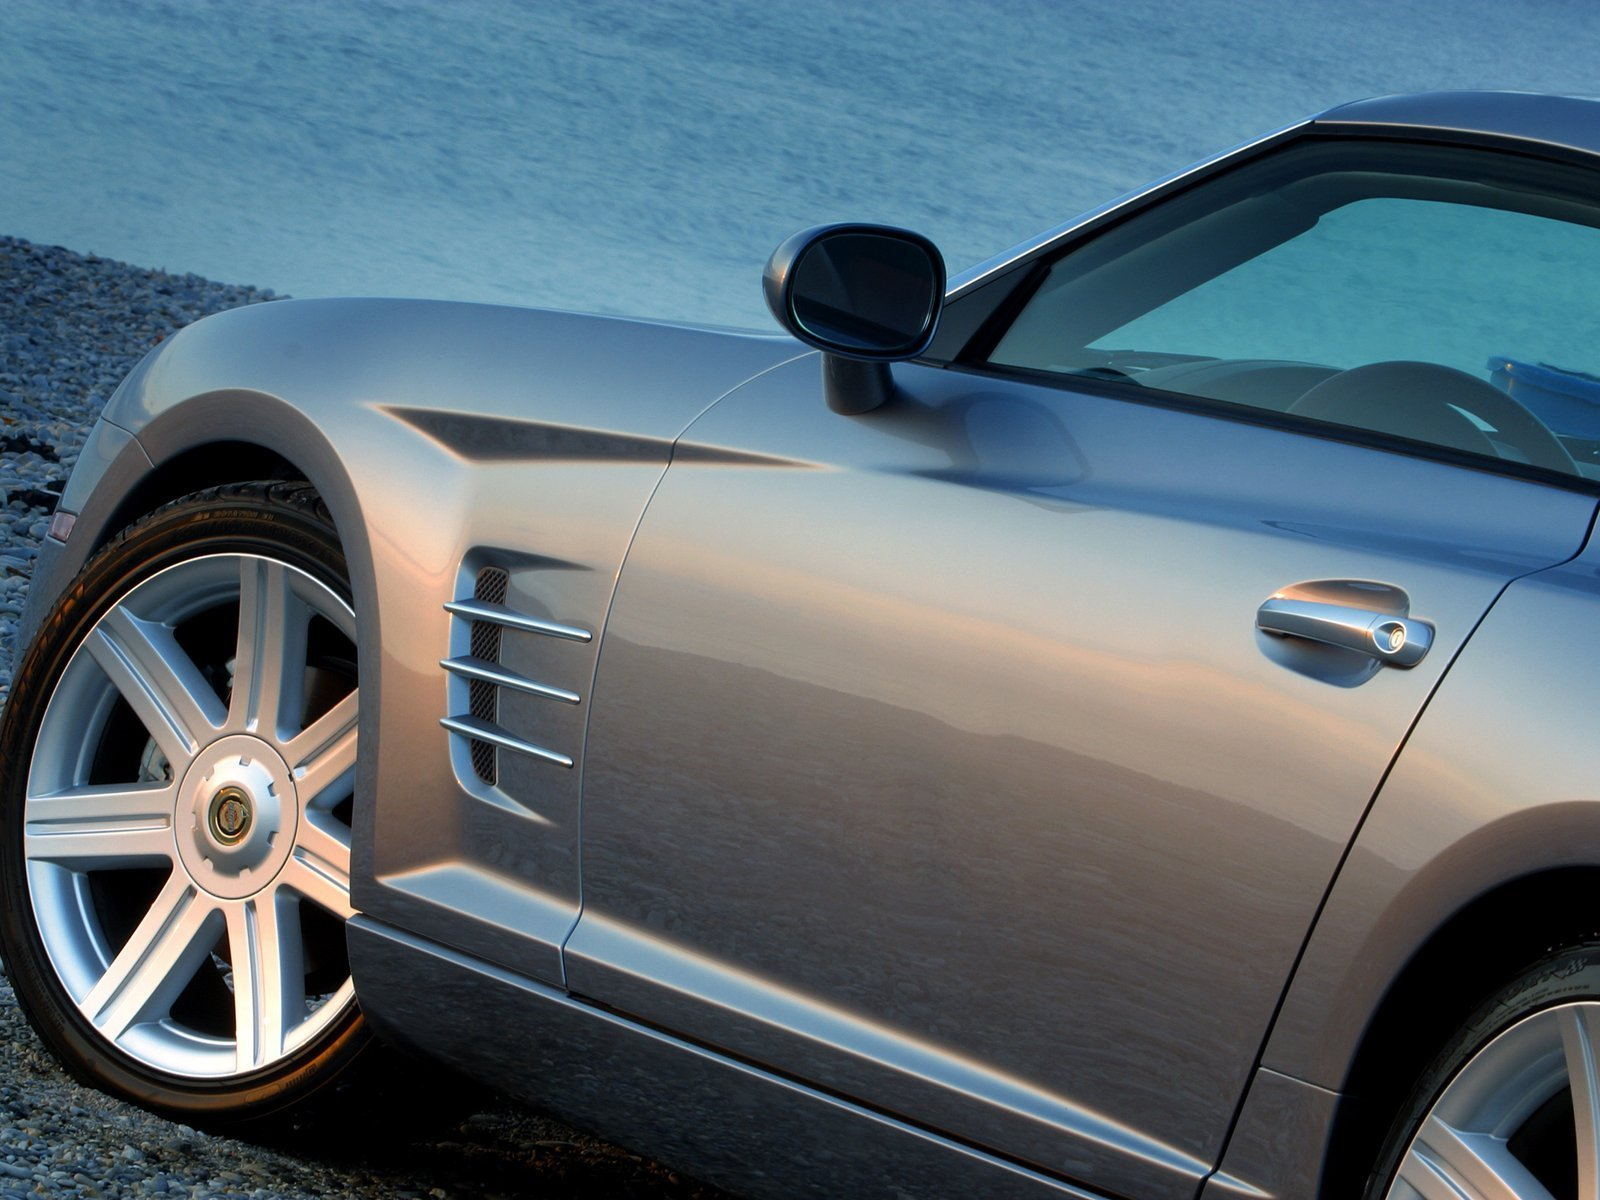 2003 Chrysler Crossfire | Top Speed